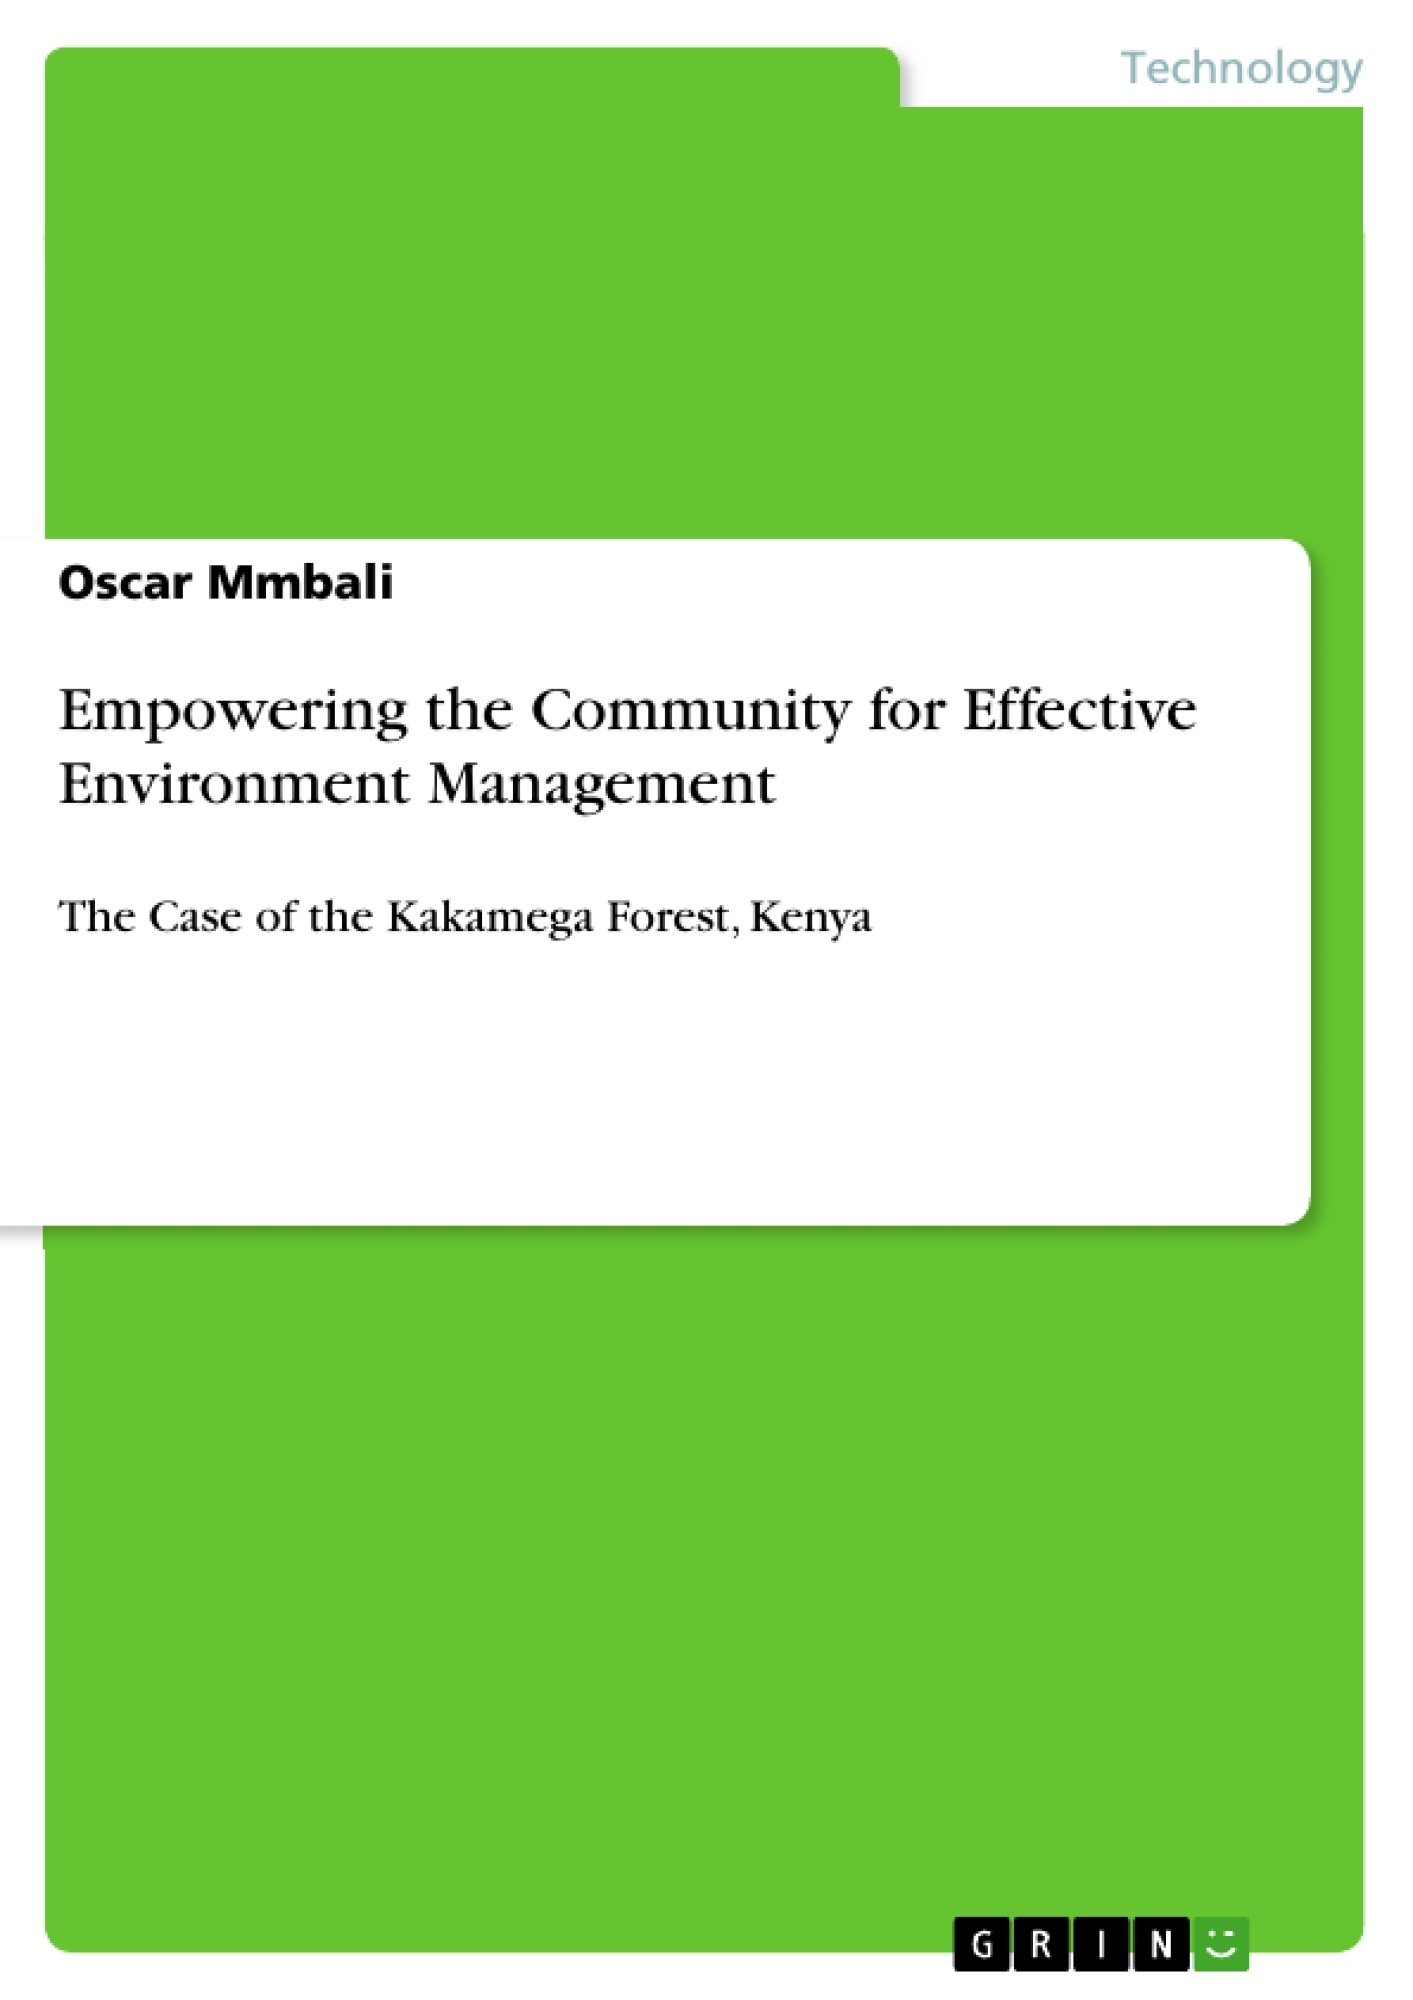 Title: Empowering the Community for Effective Environment Management